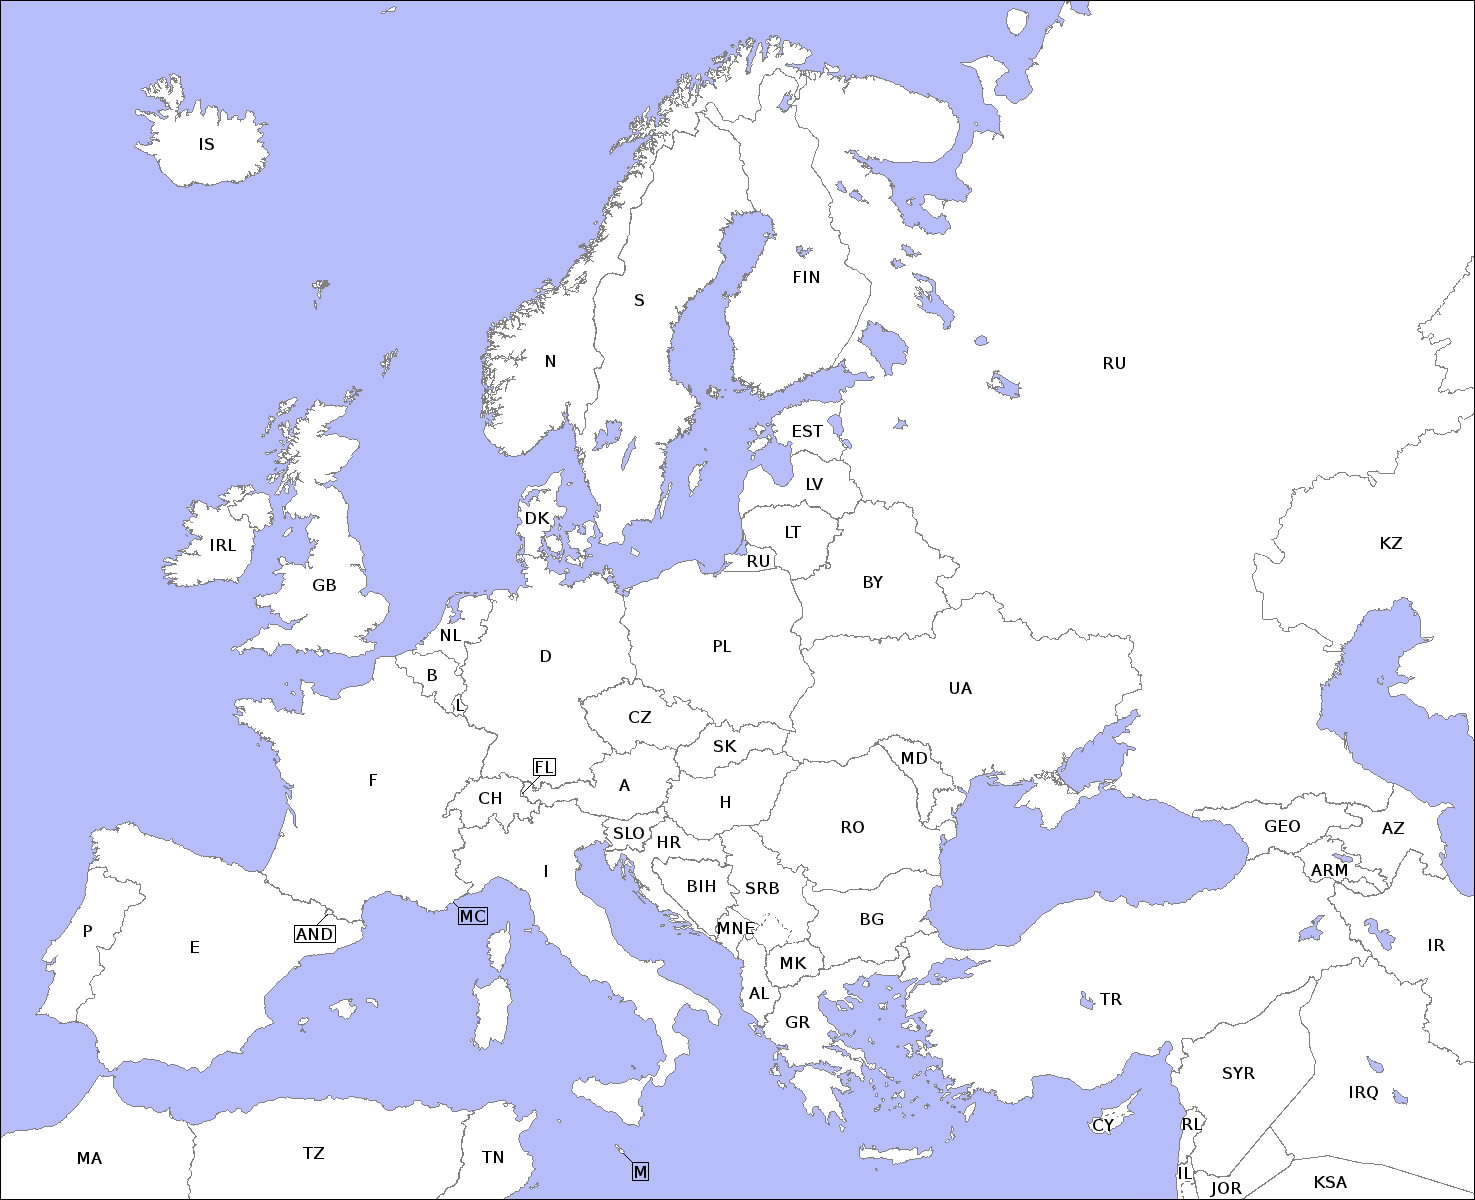 File:Europe countries map contours.png - Wikimedia Commons